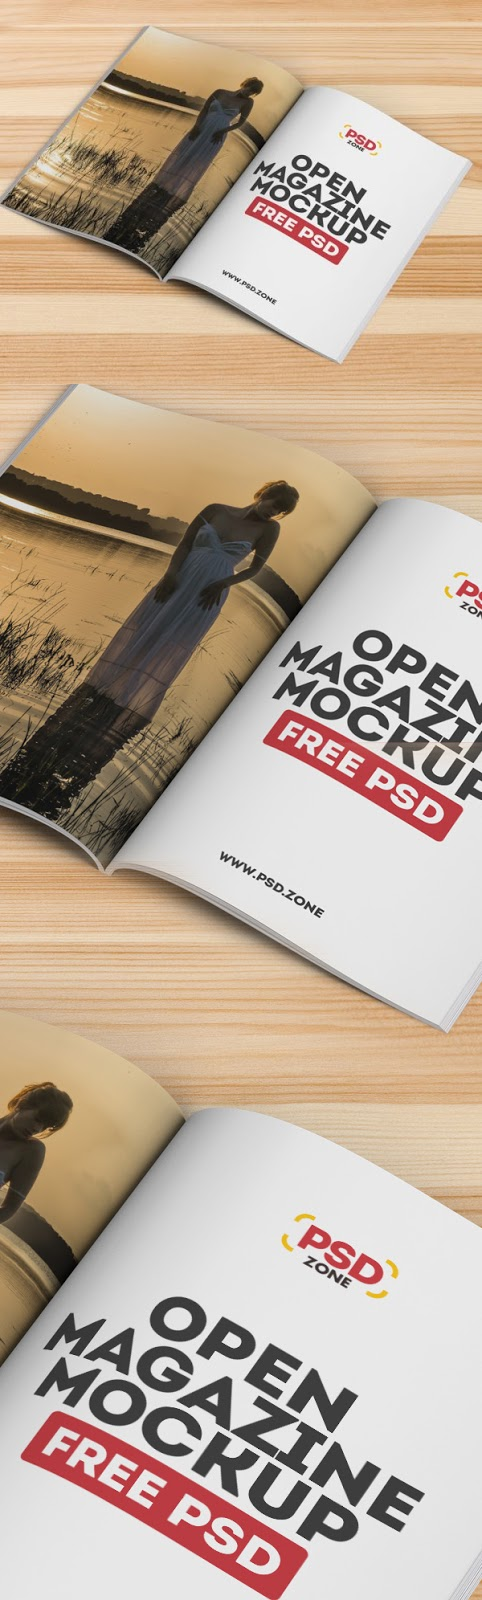 Download Free Mockup PSD 2018 - Open Magazine Mockup Free PSD